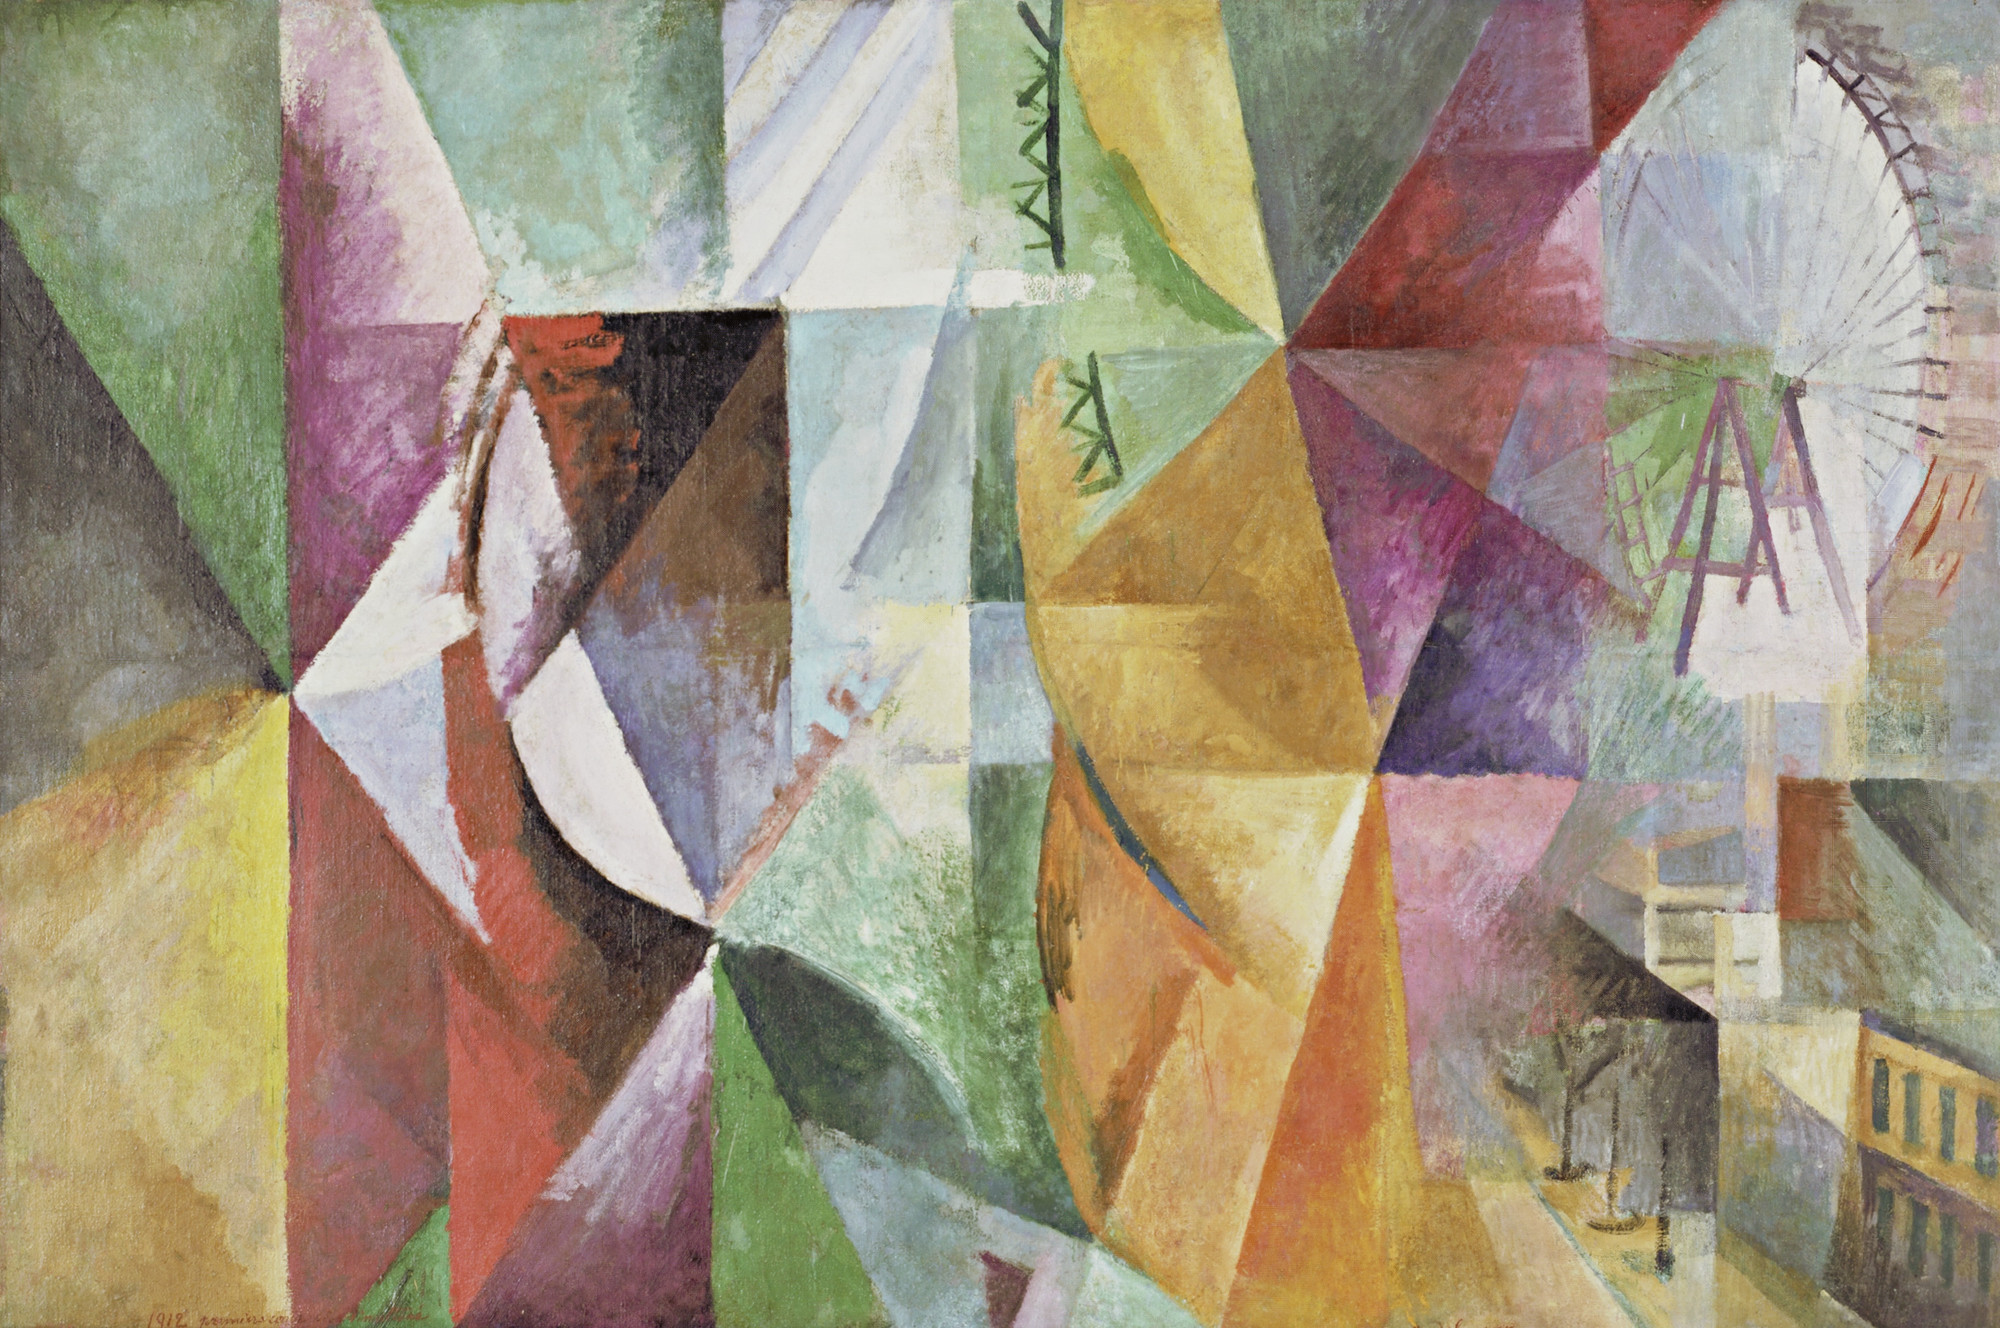 Robert Delaunay. The Three Windows, the Tower and the Wheel. 1912